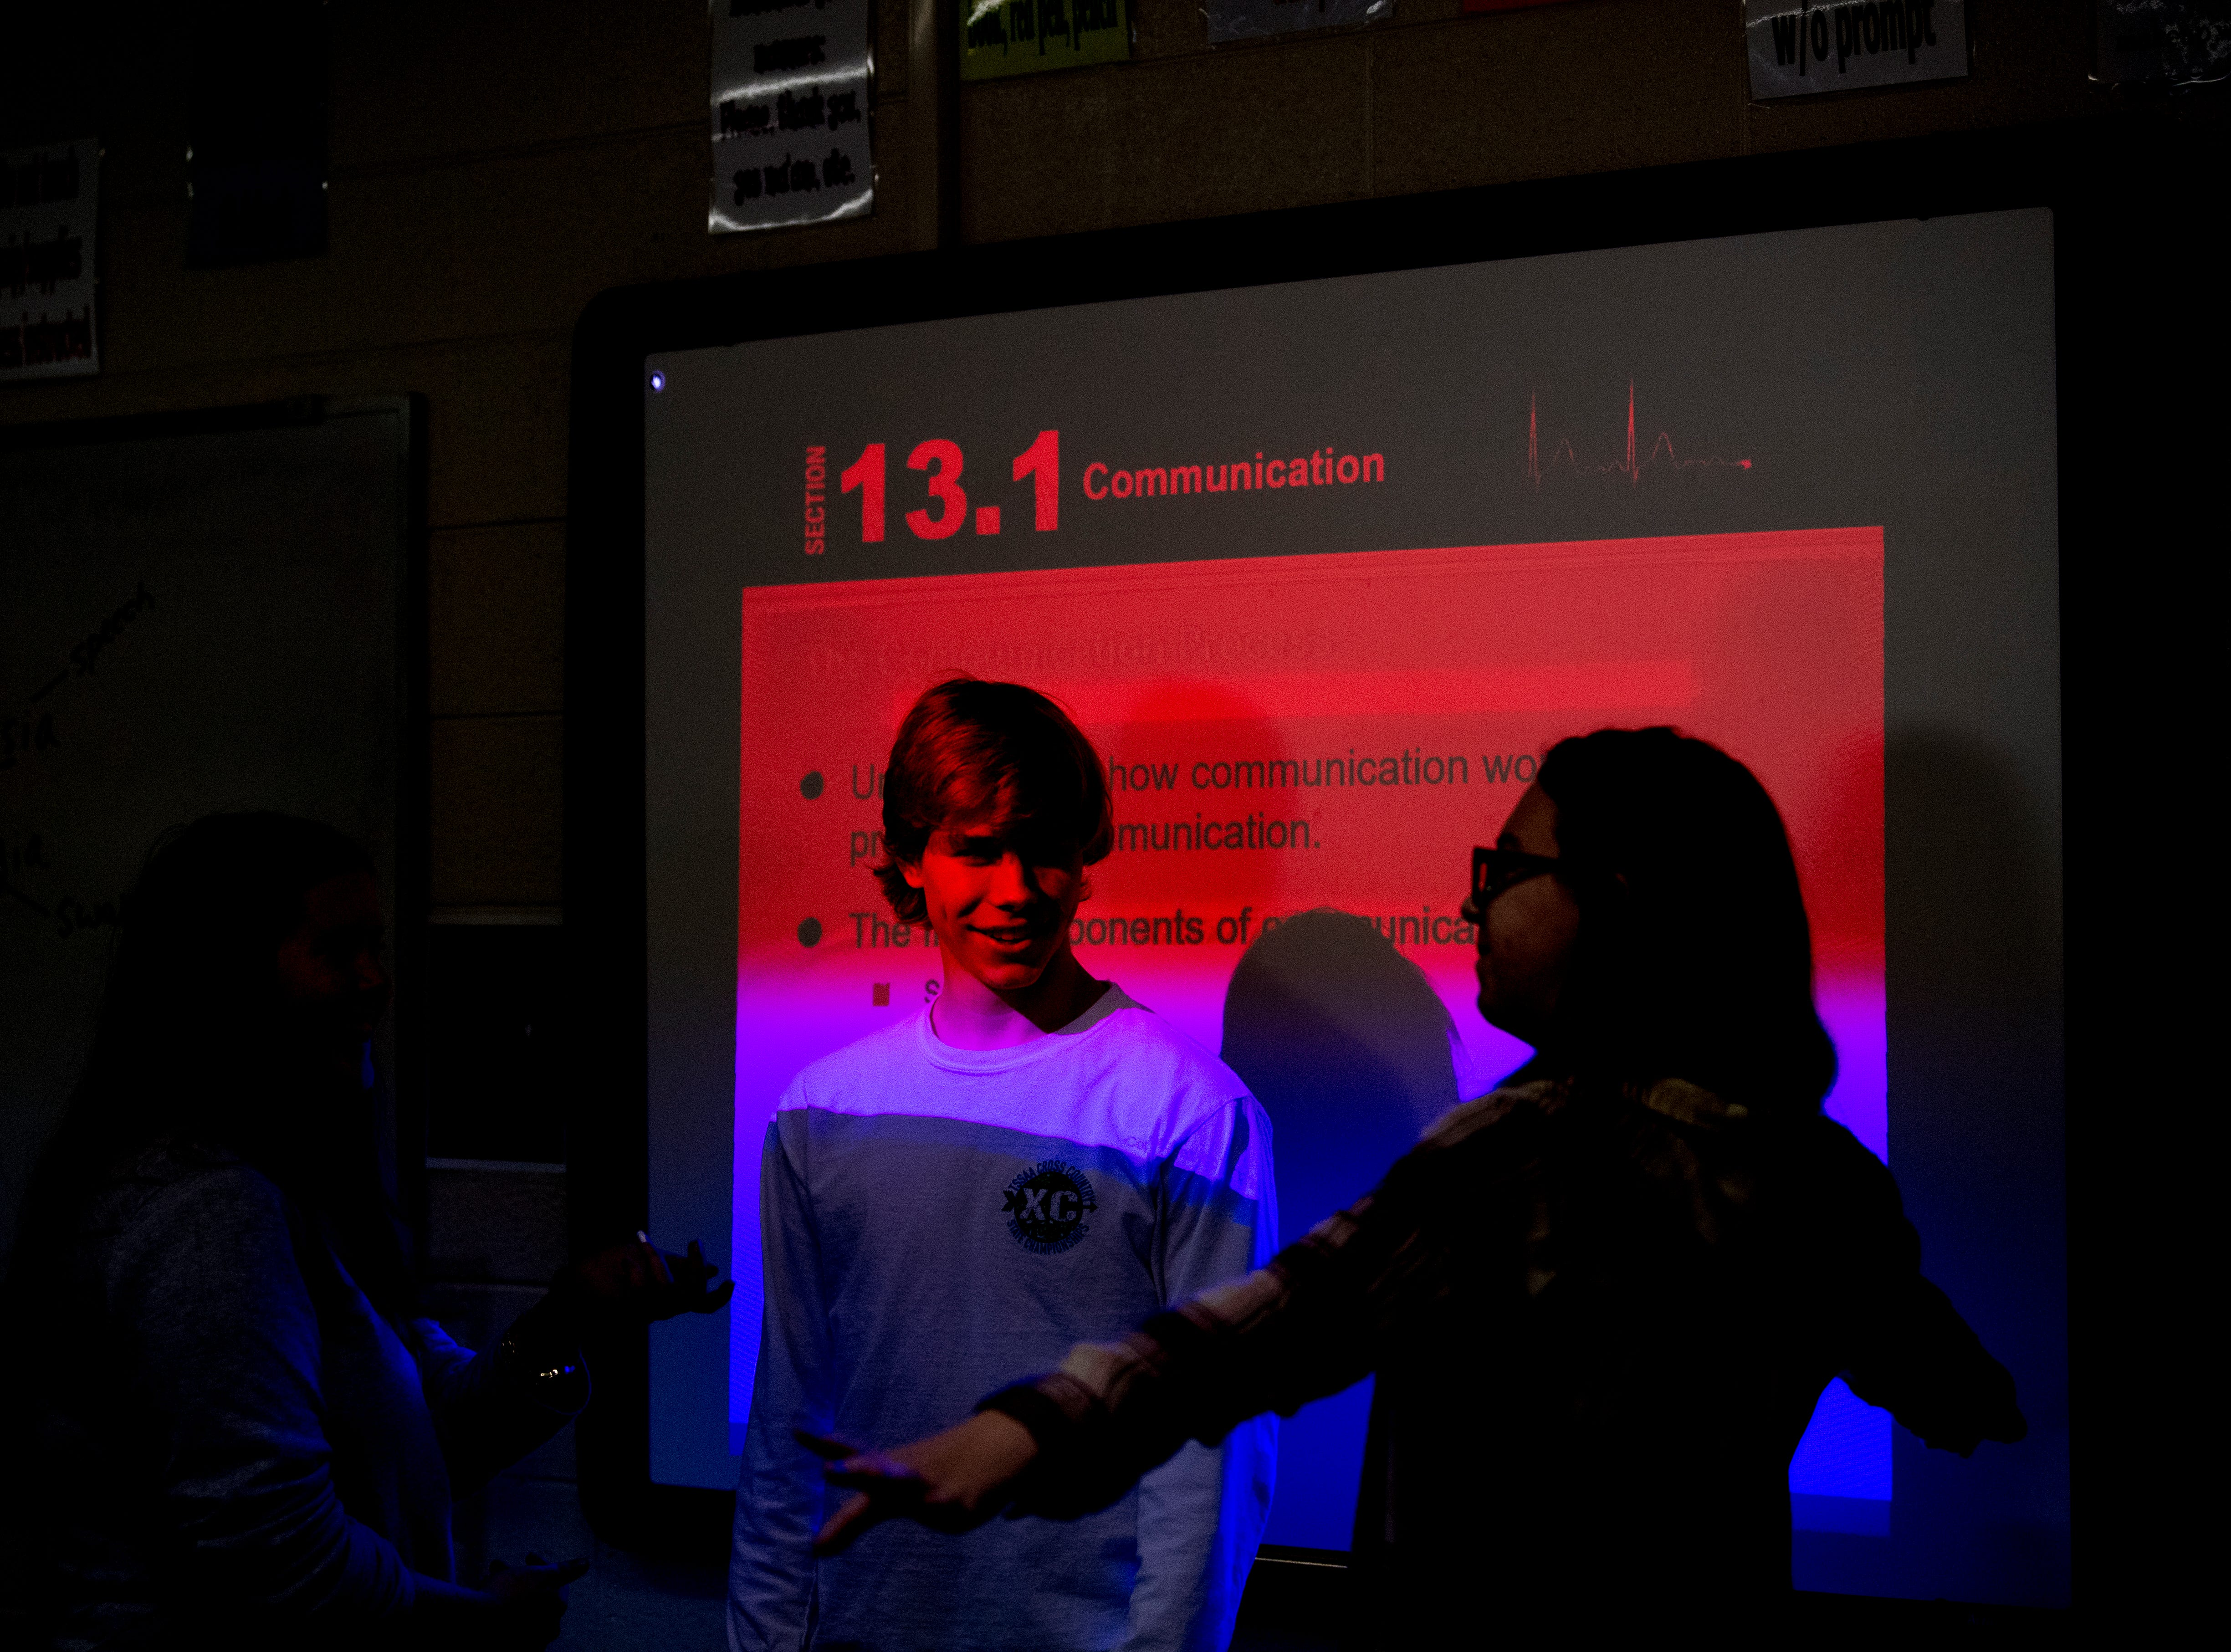 Maryville senior Jacob presents a demonstration with classmates in Anita Crook's medical therapeutics class at Maryville High School in Maryville, Tennessee, on Friday, January 11, 2019. More time with teachers as well as time to study and work on homework are some of the benefits students enjoy when on block schedules.